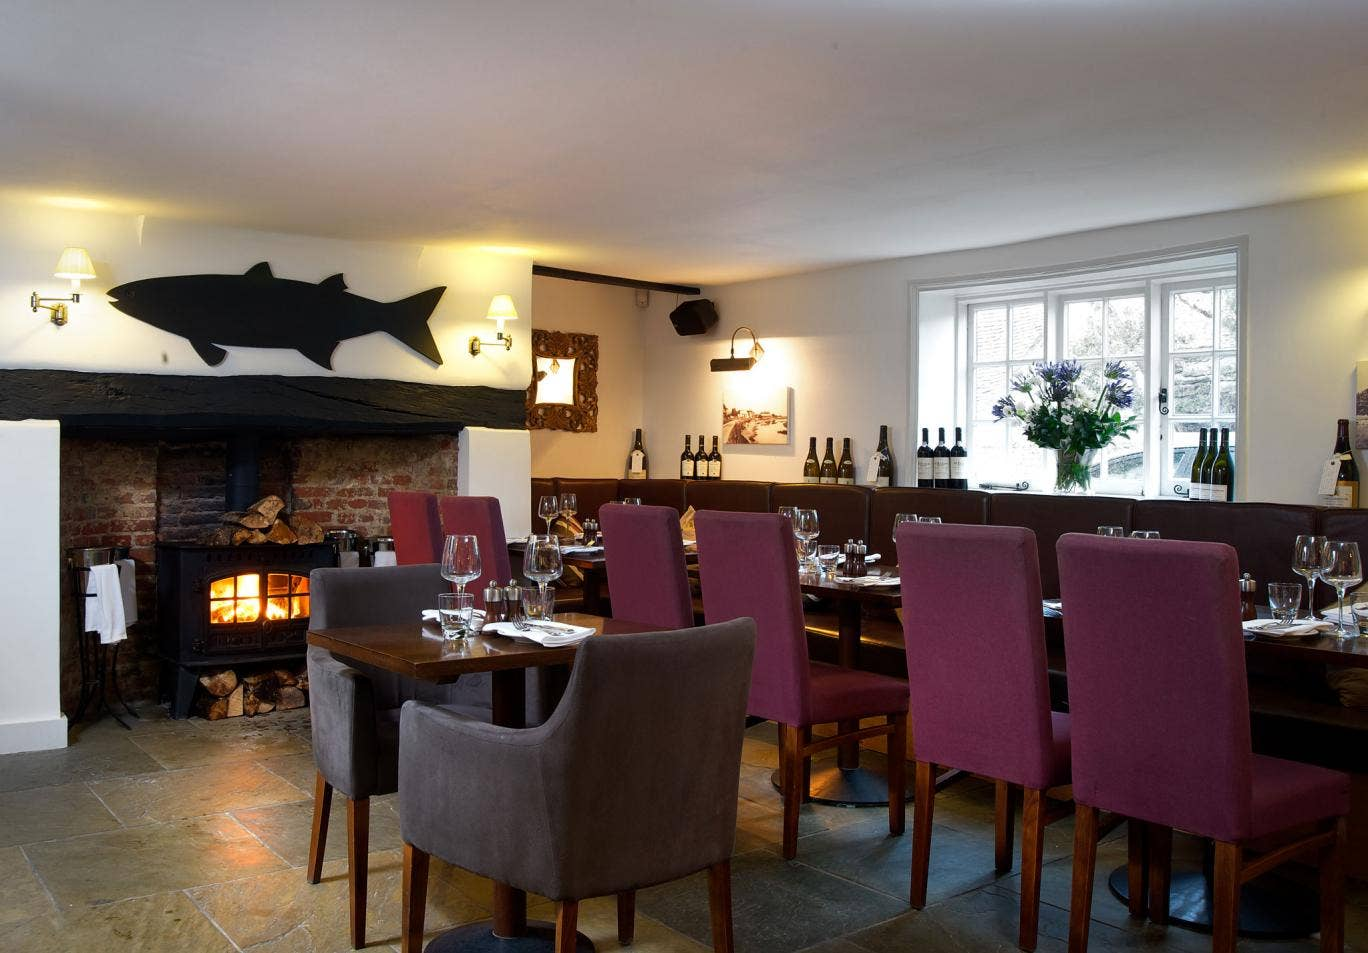 Vision of loveliness: The Crab & Lobster was an inn in the 17th century and has been renovated to the tune of £3m